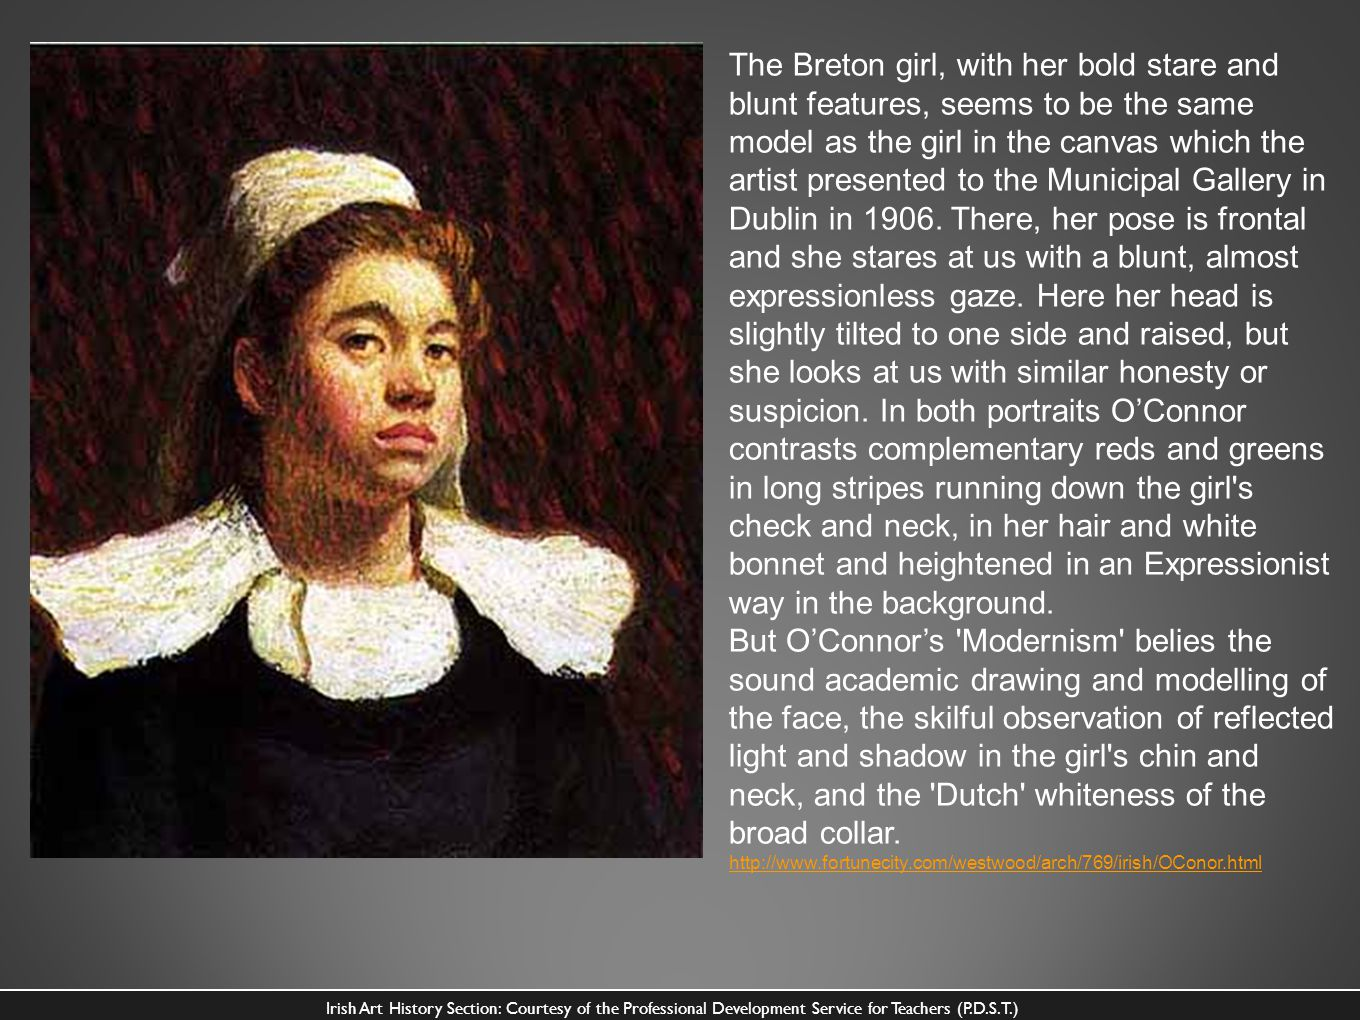 The Breton girl, with her bold stare and blunt features, seems to be the same model as the girl in the canvas which the artist presented to the Municipal Gallery in Dublin in There, her pose is frontal and she stares at us with a blunt, almost expressionless gaze. Here her head is slightly tilted to one side and raised, but she looks at us with similar honesty or suspicion. In both portraits O'Connor contrasts complementary reds and greens in long stripes running down the girl s check and neck, in her hair and white bonnet and heightened in an Expressionist way in the background.